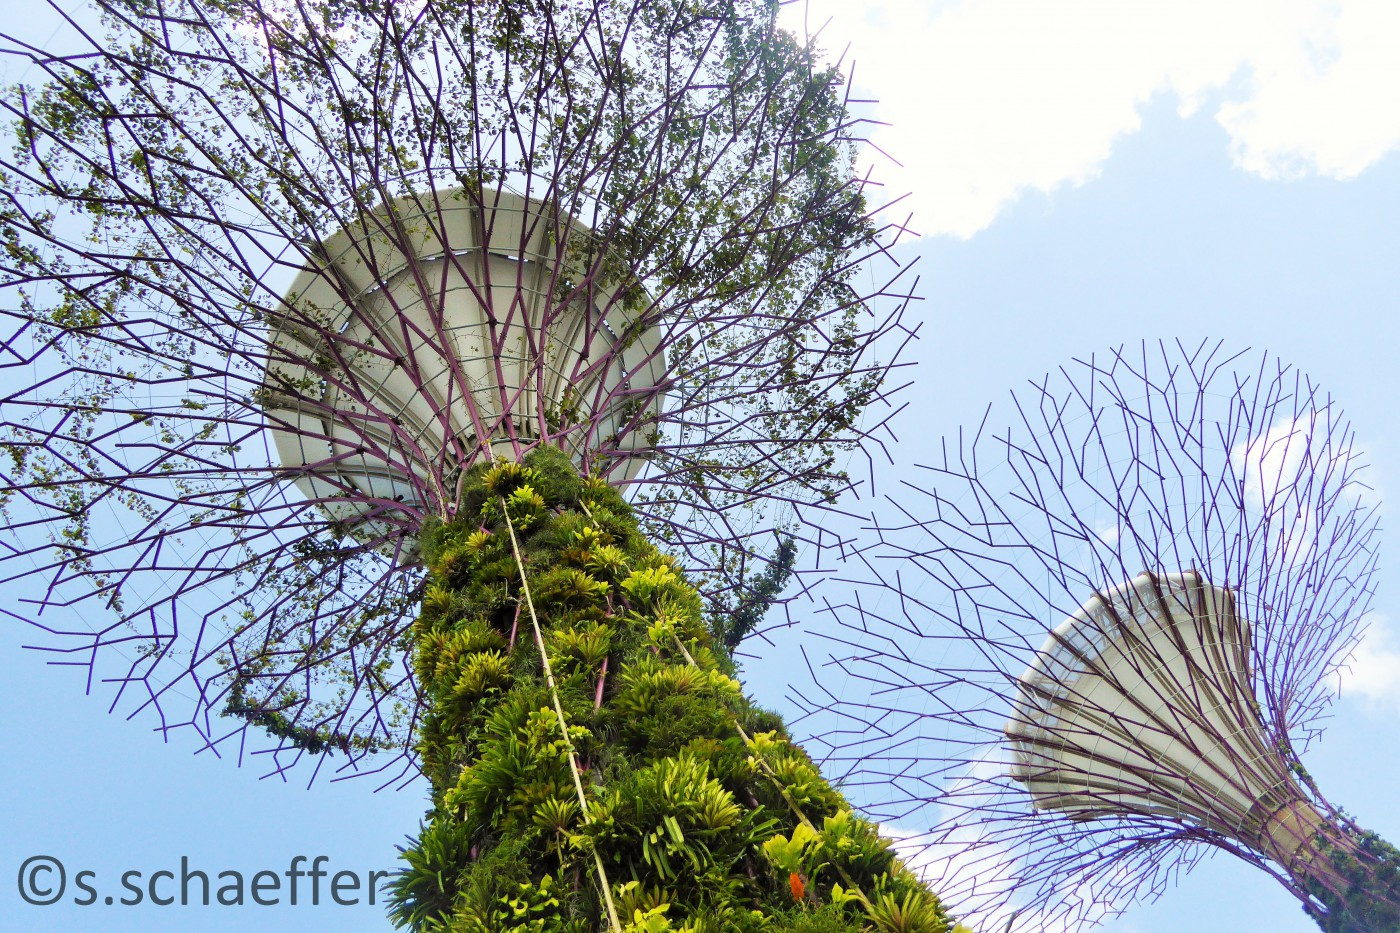 Gardens By the Bay Supertrees Singapur ©s.schaeffer